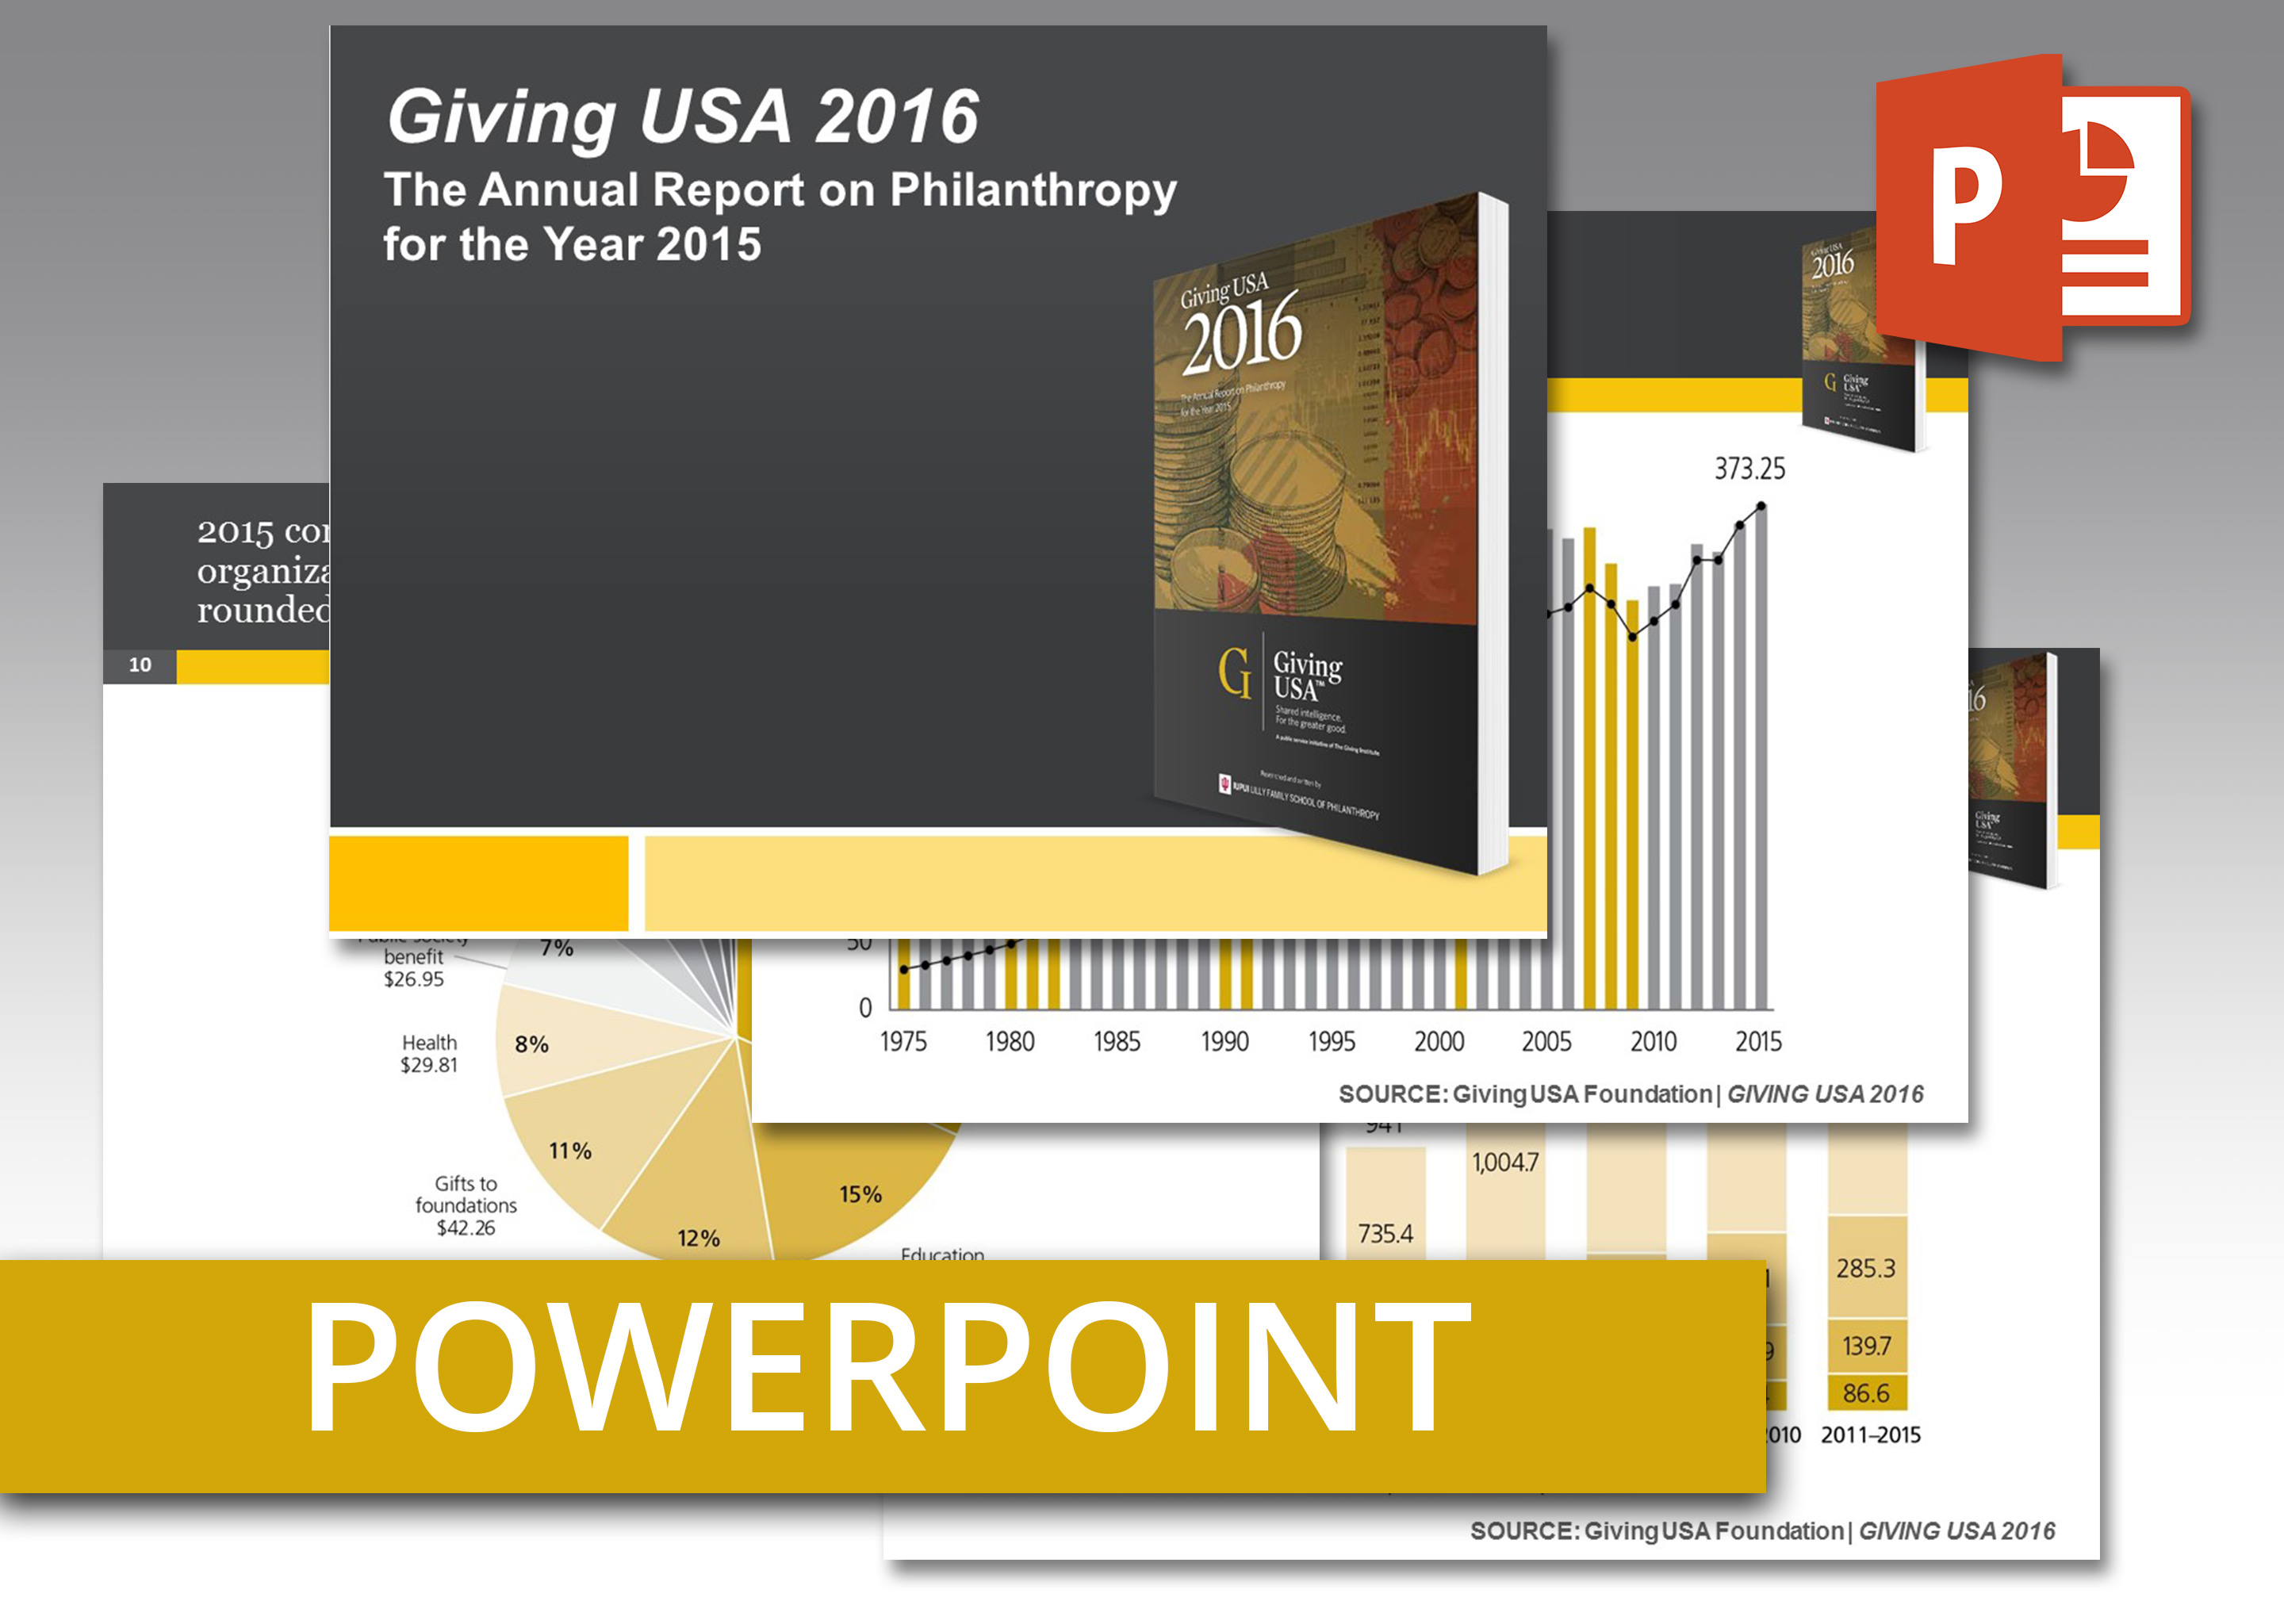 Coolmathgamesus  Wonderful Giving Usa  Powerpoint An Easytouse Presentation Of Report  With Fetching Giving Usa  Powerpoint An Easytouse Presentation Of Report Findings Including Talking Points With Attractive Sharpen The Saw Powerpoint Also Powerpoint Slide Format In Addition Powerpoint Remote Android And Properties Of Multiplication Powerpoint As Well As Online Free Powerpoint Additionally Powerpoint Software For Mac From Givingusaorg With Coolmathgamesus  Fetching Giving Usa  Powerpoint An Easytouse Presentation Of Report  With Attractive Giving Usa  Powerpoint An Easytouse Presentation Of Report Findings Including Talking Points And Wonderful Sharpen The Saw Powerpoint Also Powerpoint Slide Format In Addition Powerpoint Remote Android From Givingusaorg